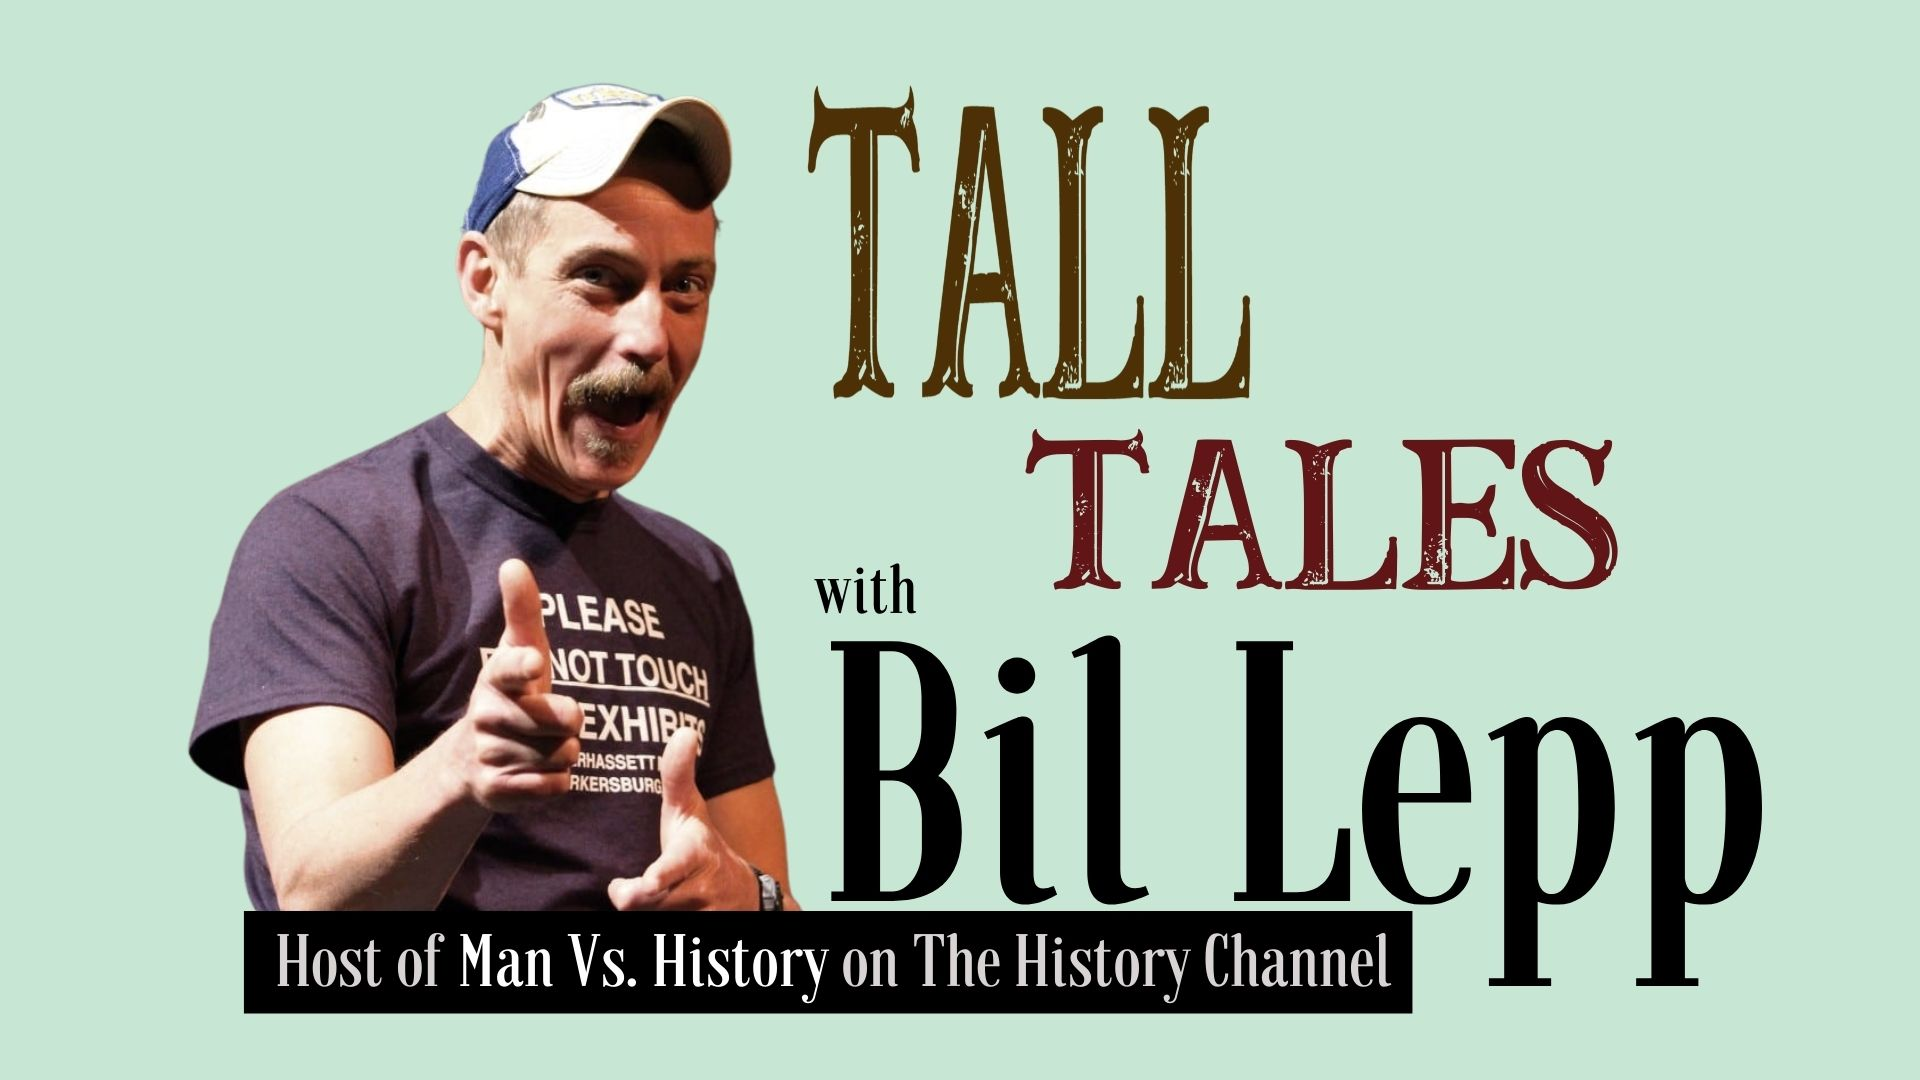 Tall Tales with Bil Lepp, Host of Man Vs. History on The History Channel - with photo of Bil Lepp